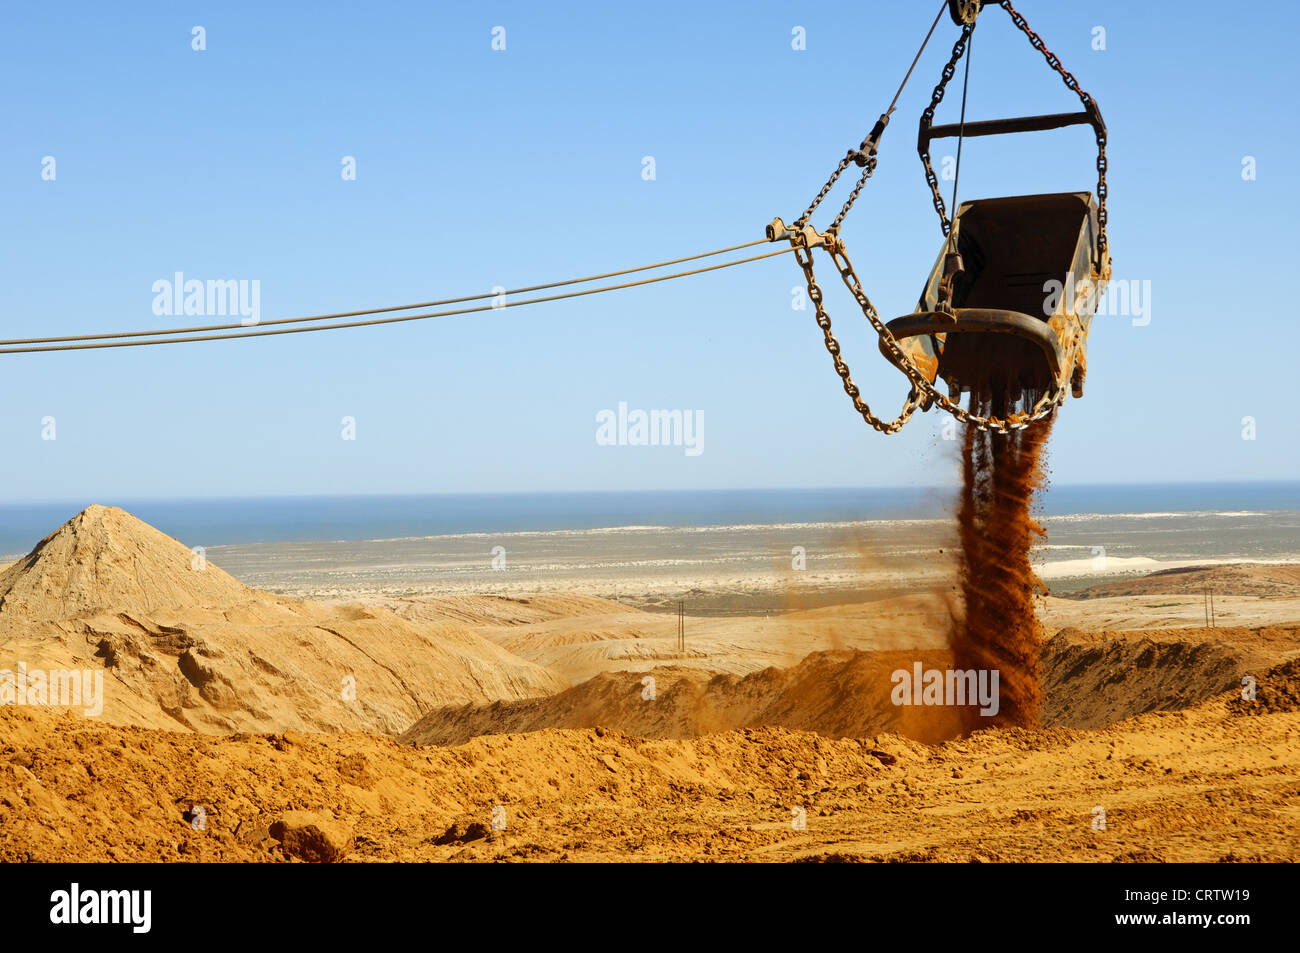 Bucket of a dragline excavator dumping earth Stock Photo